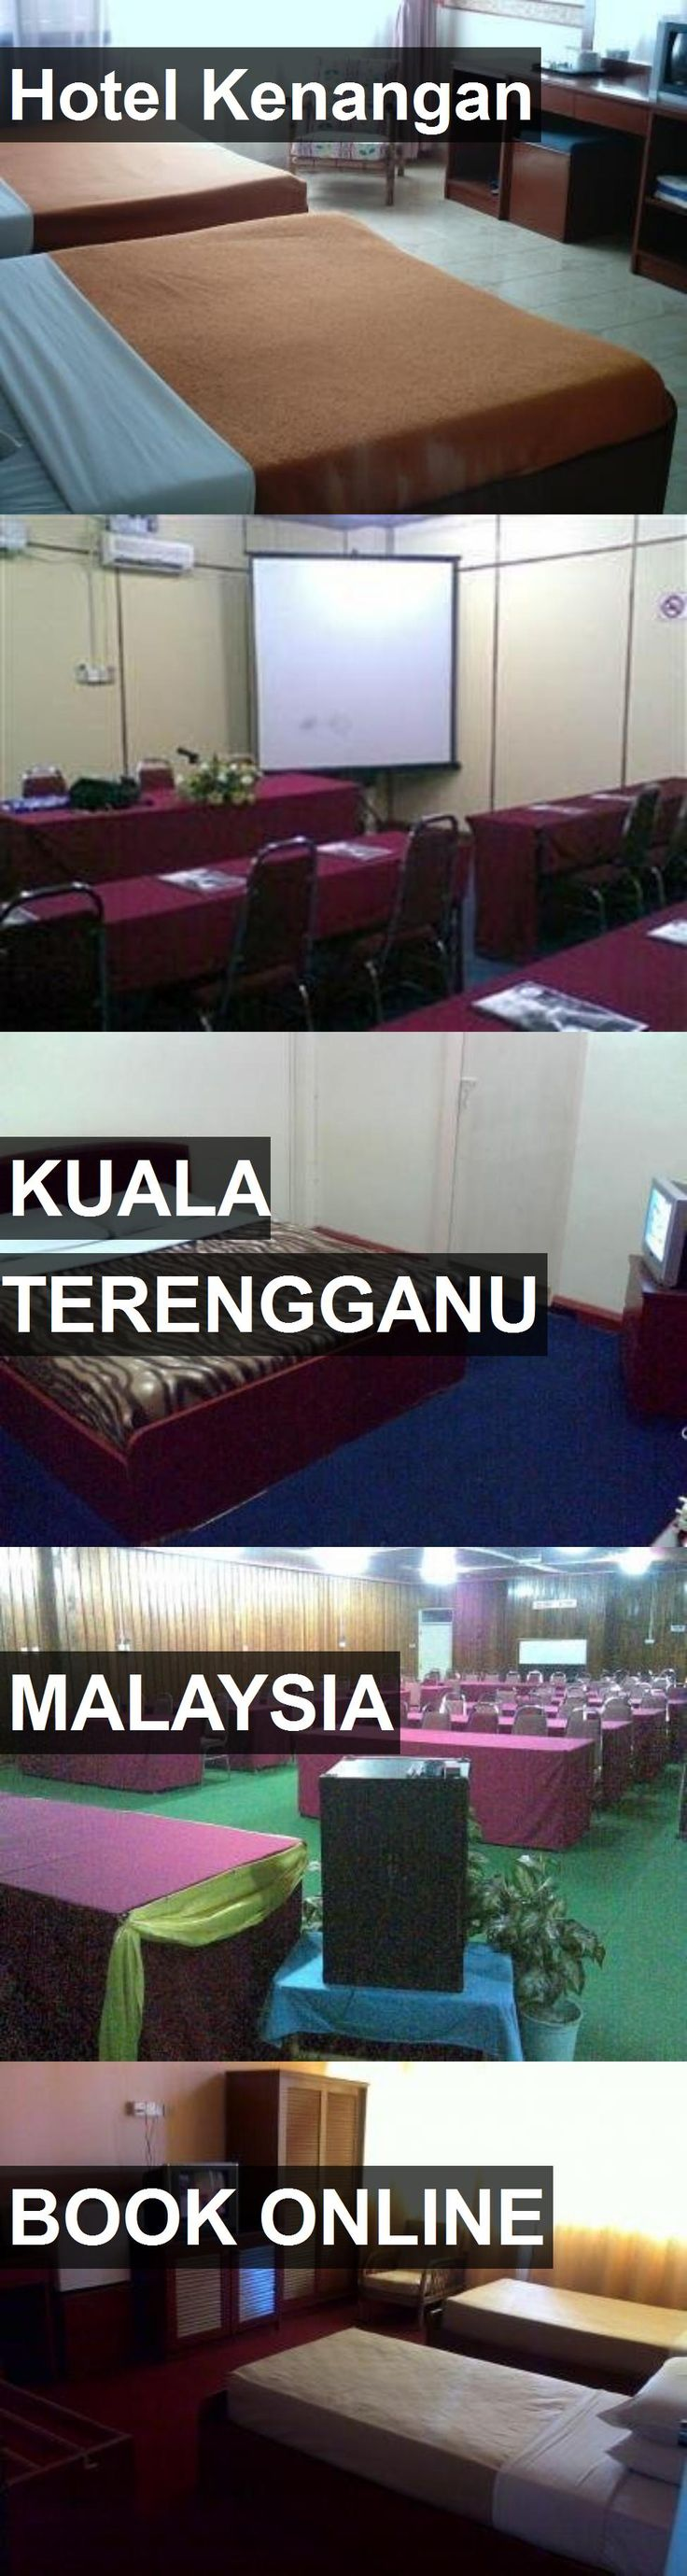 Hotel Hotel Kenangan in Kuala Terengganu, Malaysia. For more information, photos, reviews and best prices please follow the link. #Malaysia #KualaTerengganu #HotelKenangan #hotel #travel #vacation